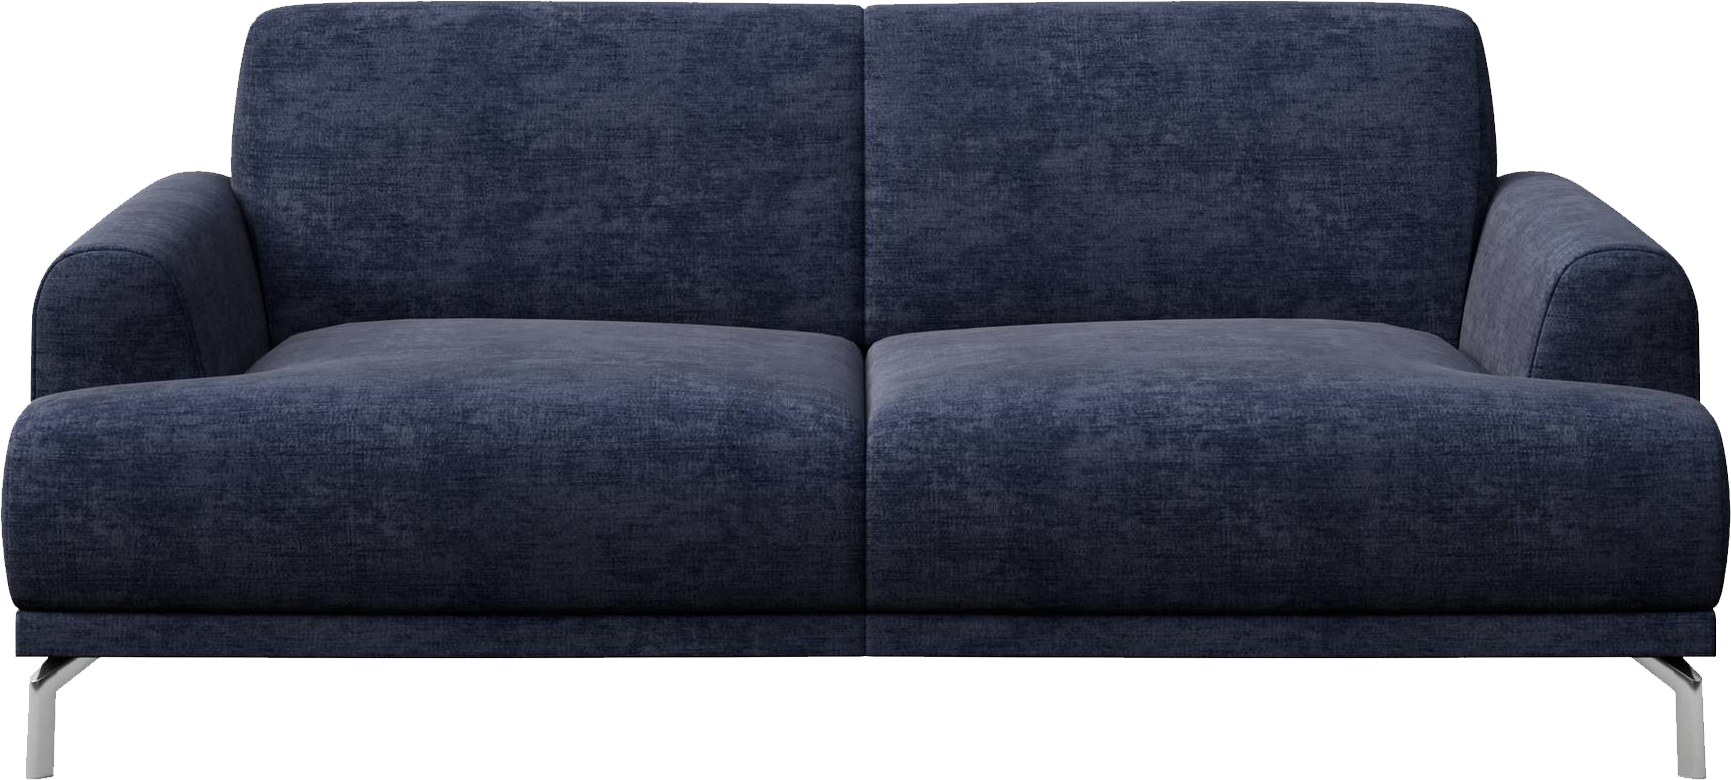 Brilliant Mesonica Puzo 2 Seater Sofa Upholstered In Navy Blue Fabric Home Interior And Landscaping Eliaenasavecom